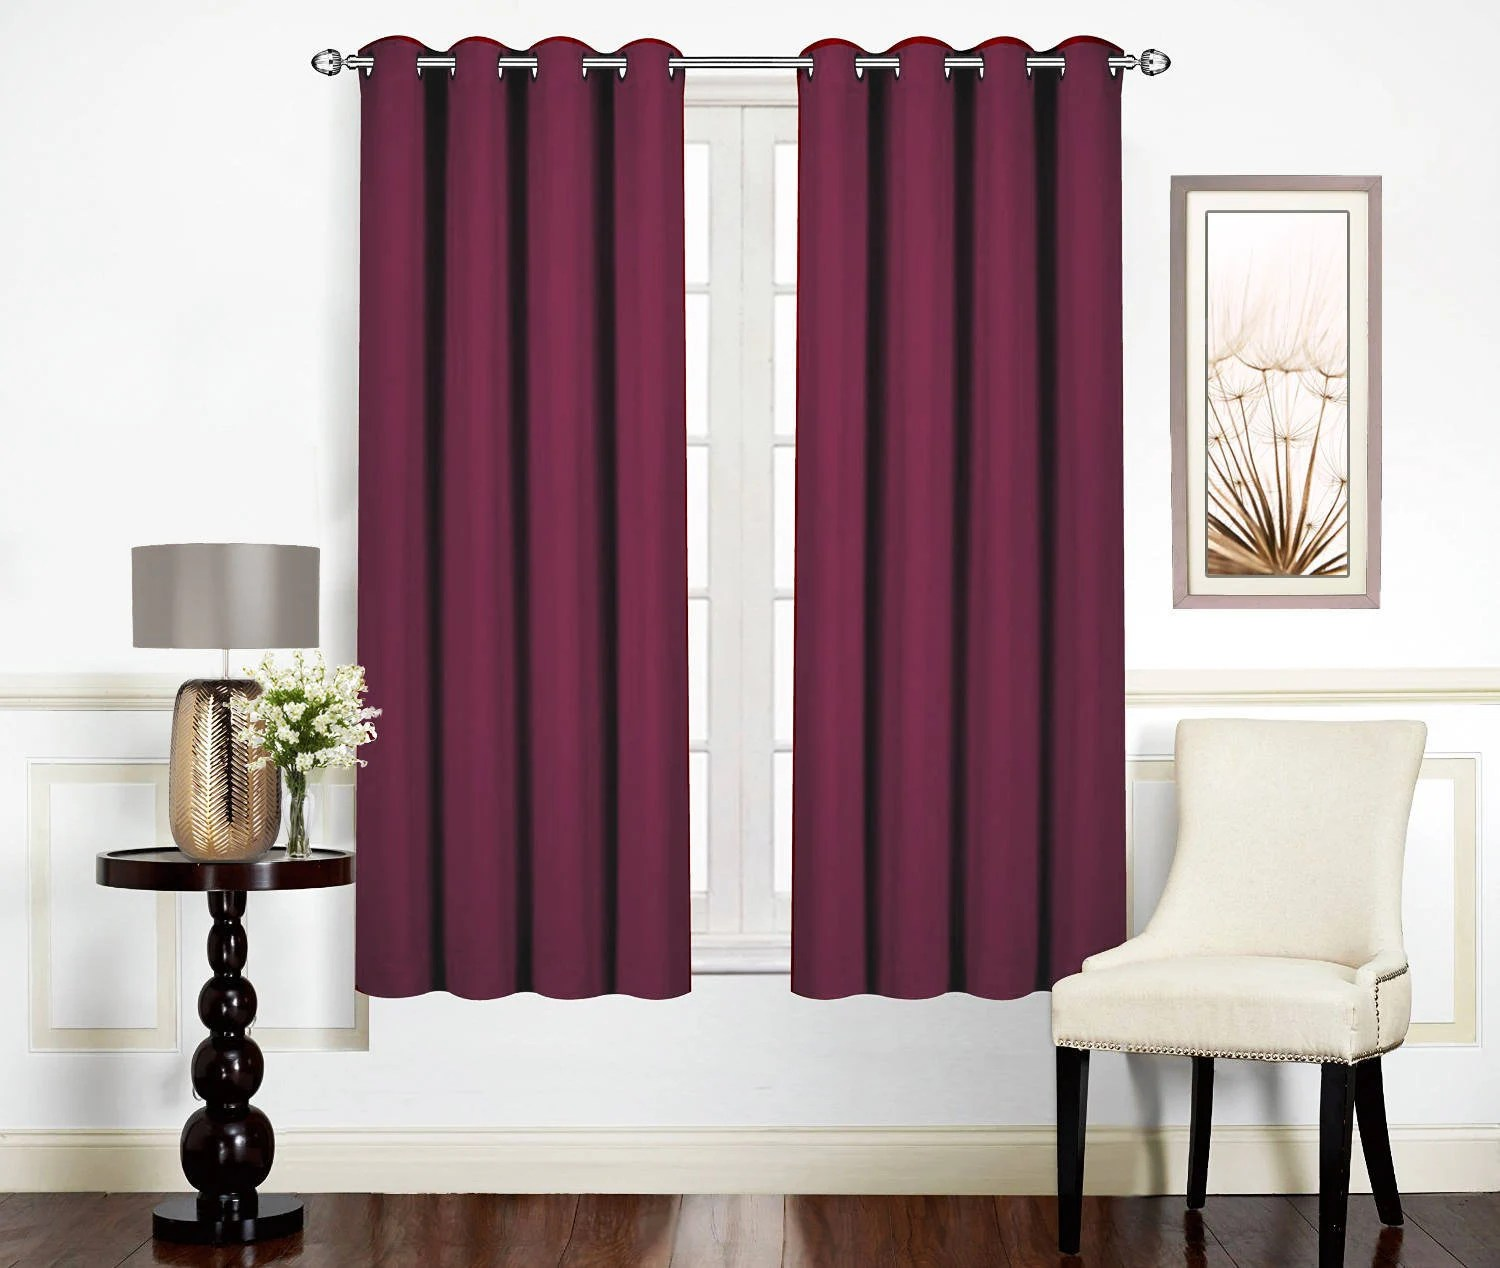 blackout curtains for bedroom burgundy custom made curtain panels grommet bronze darkening blackout window drapes heavy weight set of 2